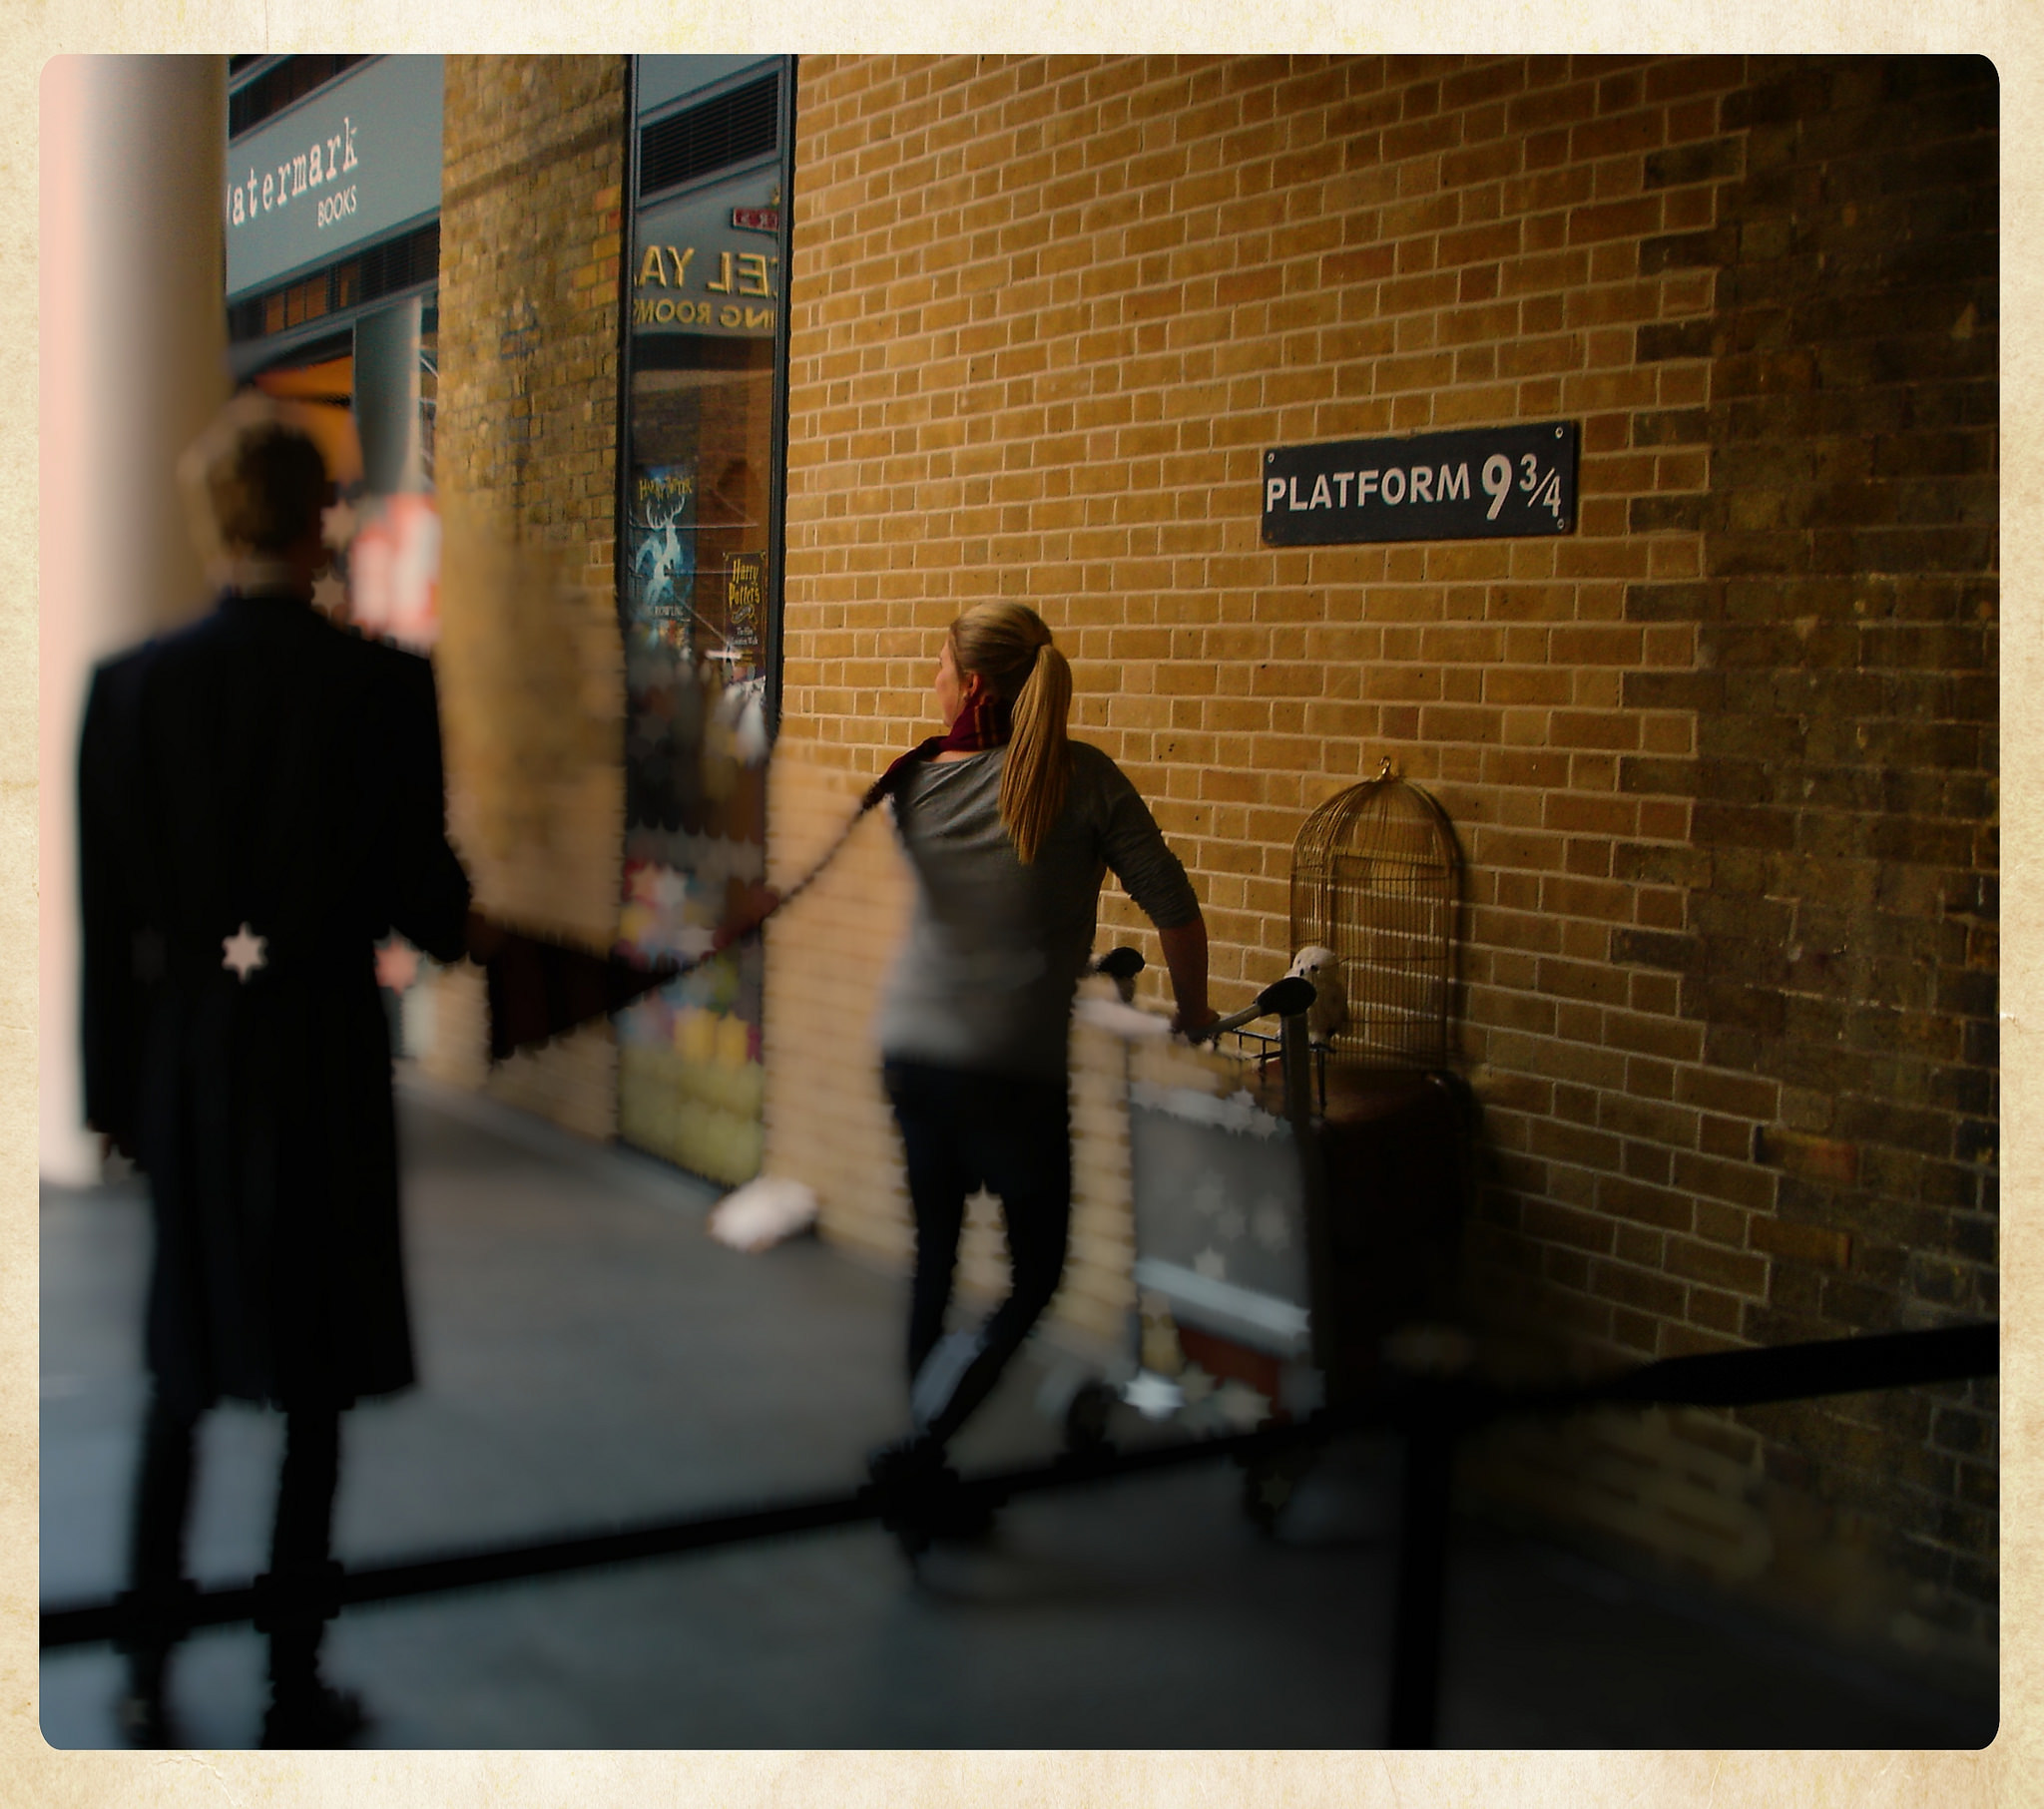 Platform 9¾ at King's Cross Station, London